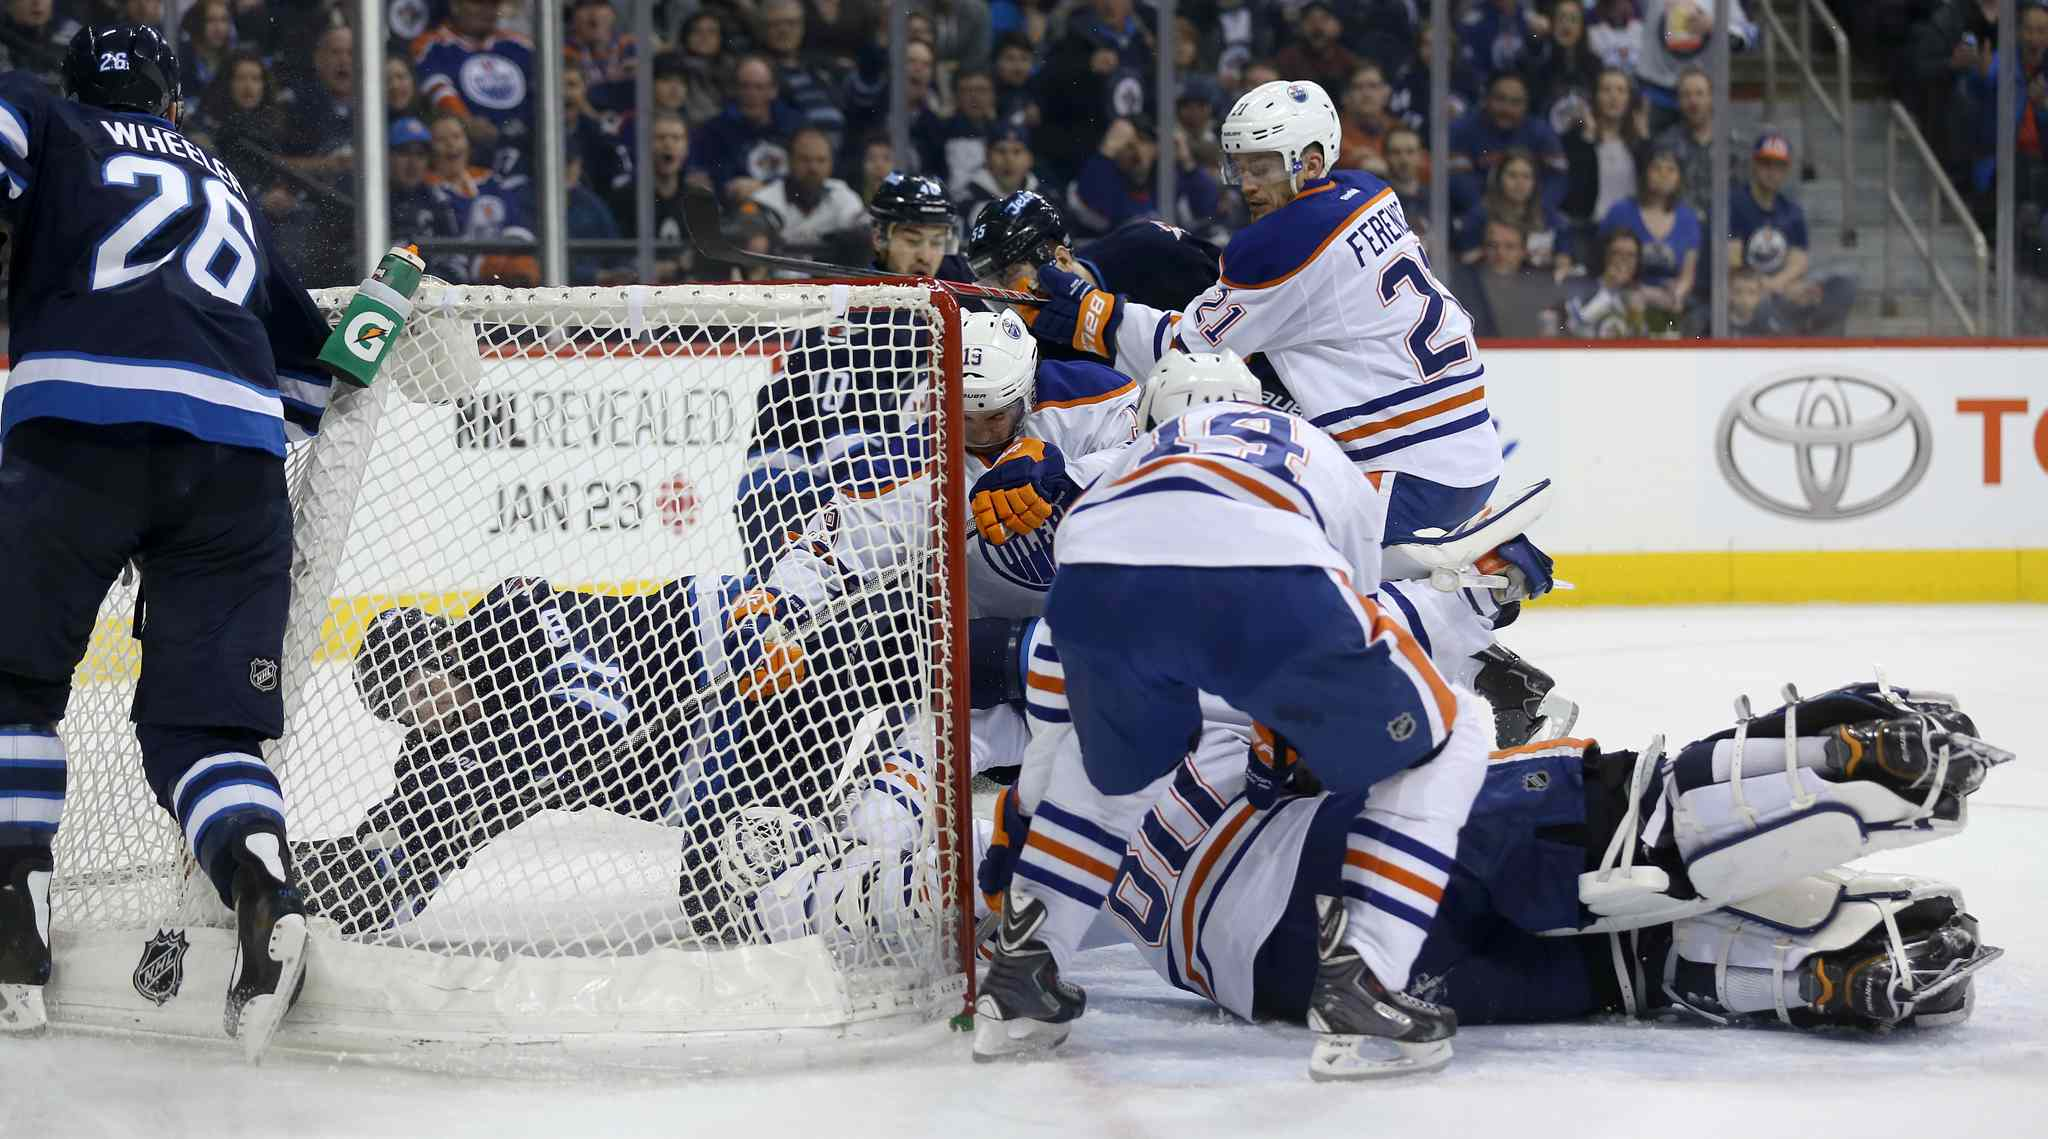 Winnipeg Jets' Jacob Trouba (8) ends up in the net past Edmonton Oilers' goaltender Ilya Bryzgalov (80) during the second period of Saturday's NHL game in Winnipeg.